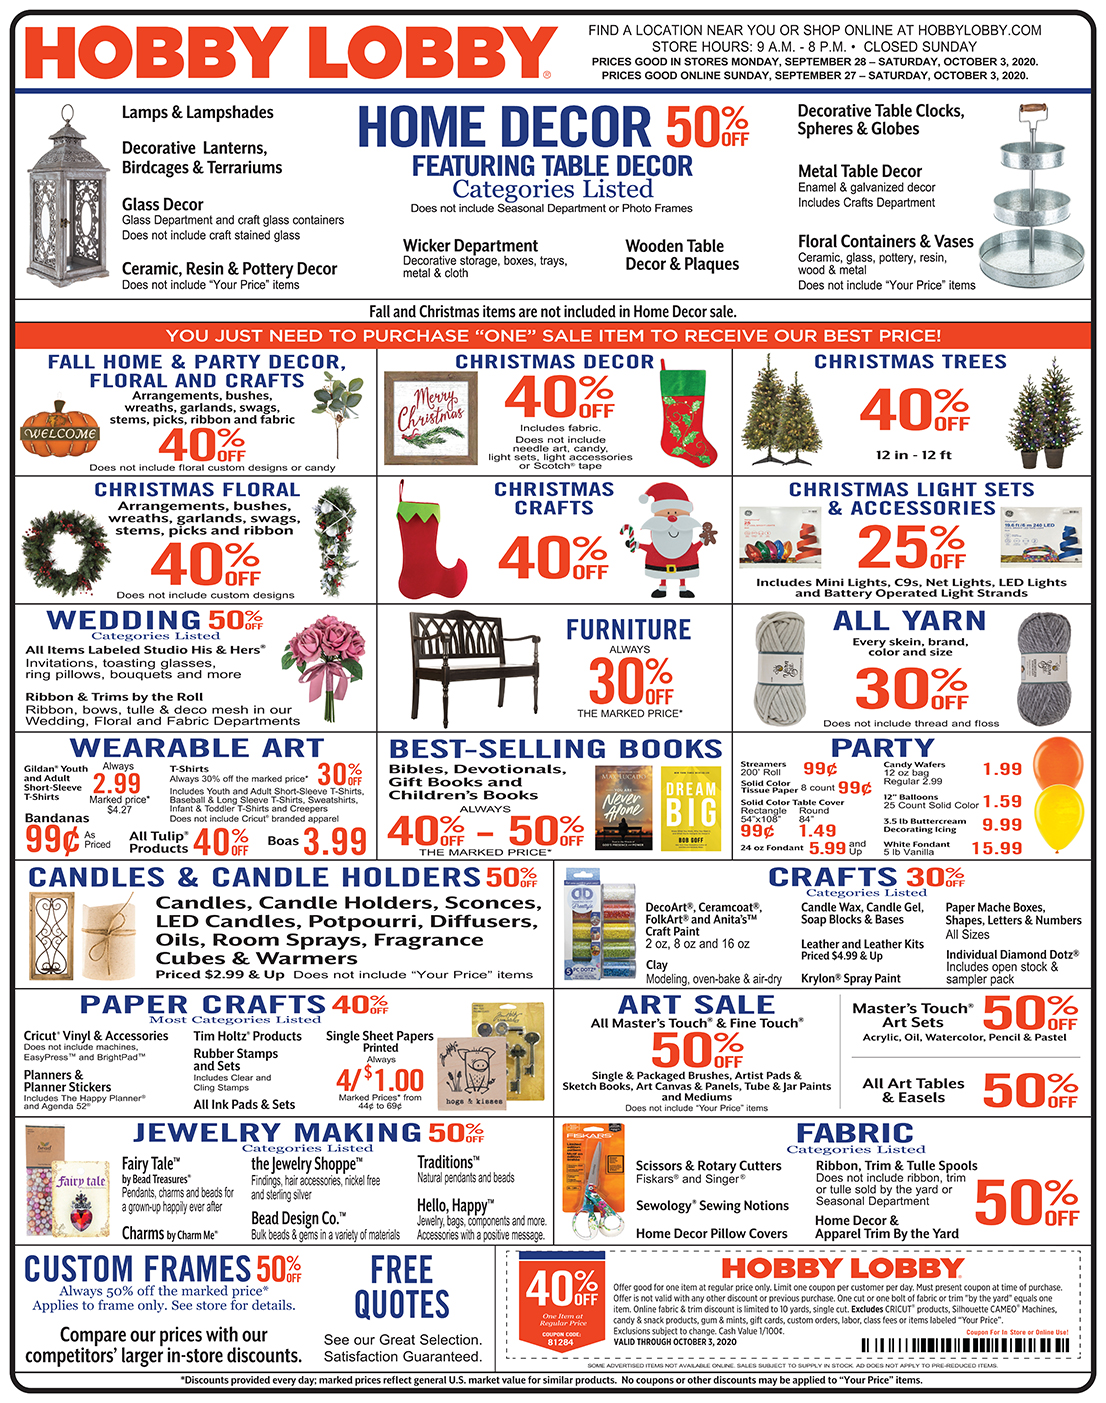 Hobby Lobby Weekly Ad - Prices Good Through October 3rd 2020